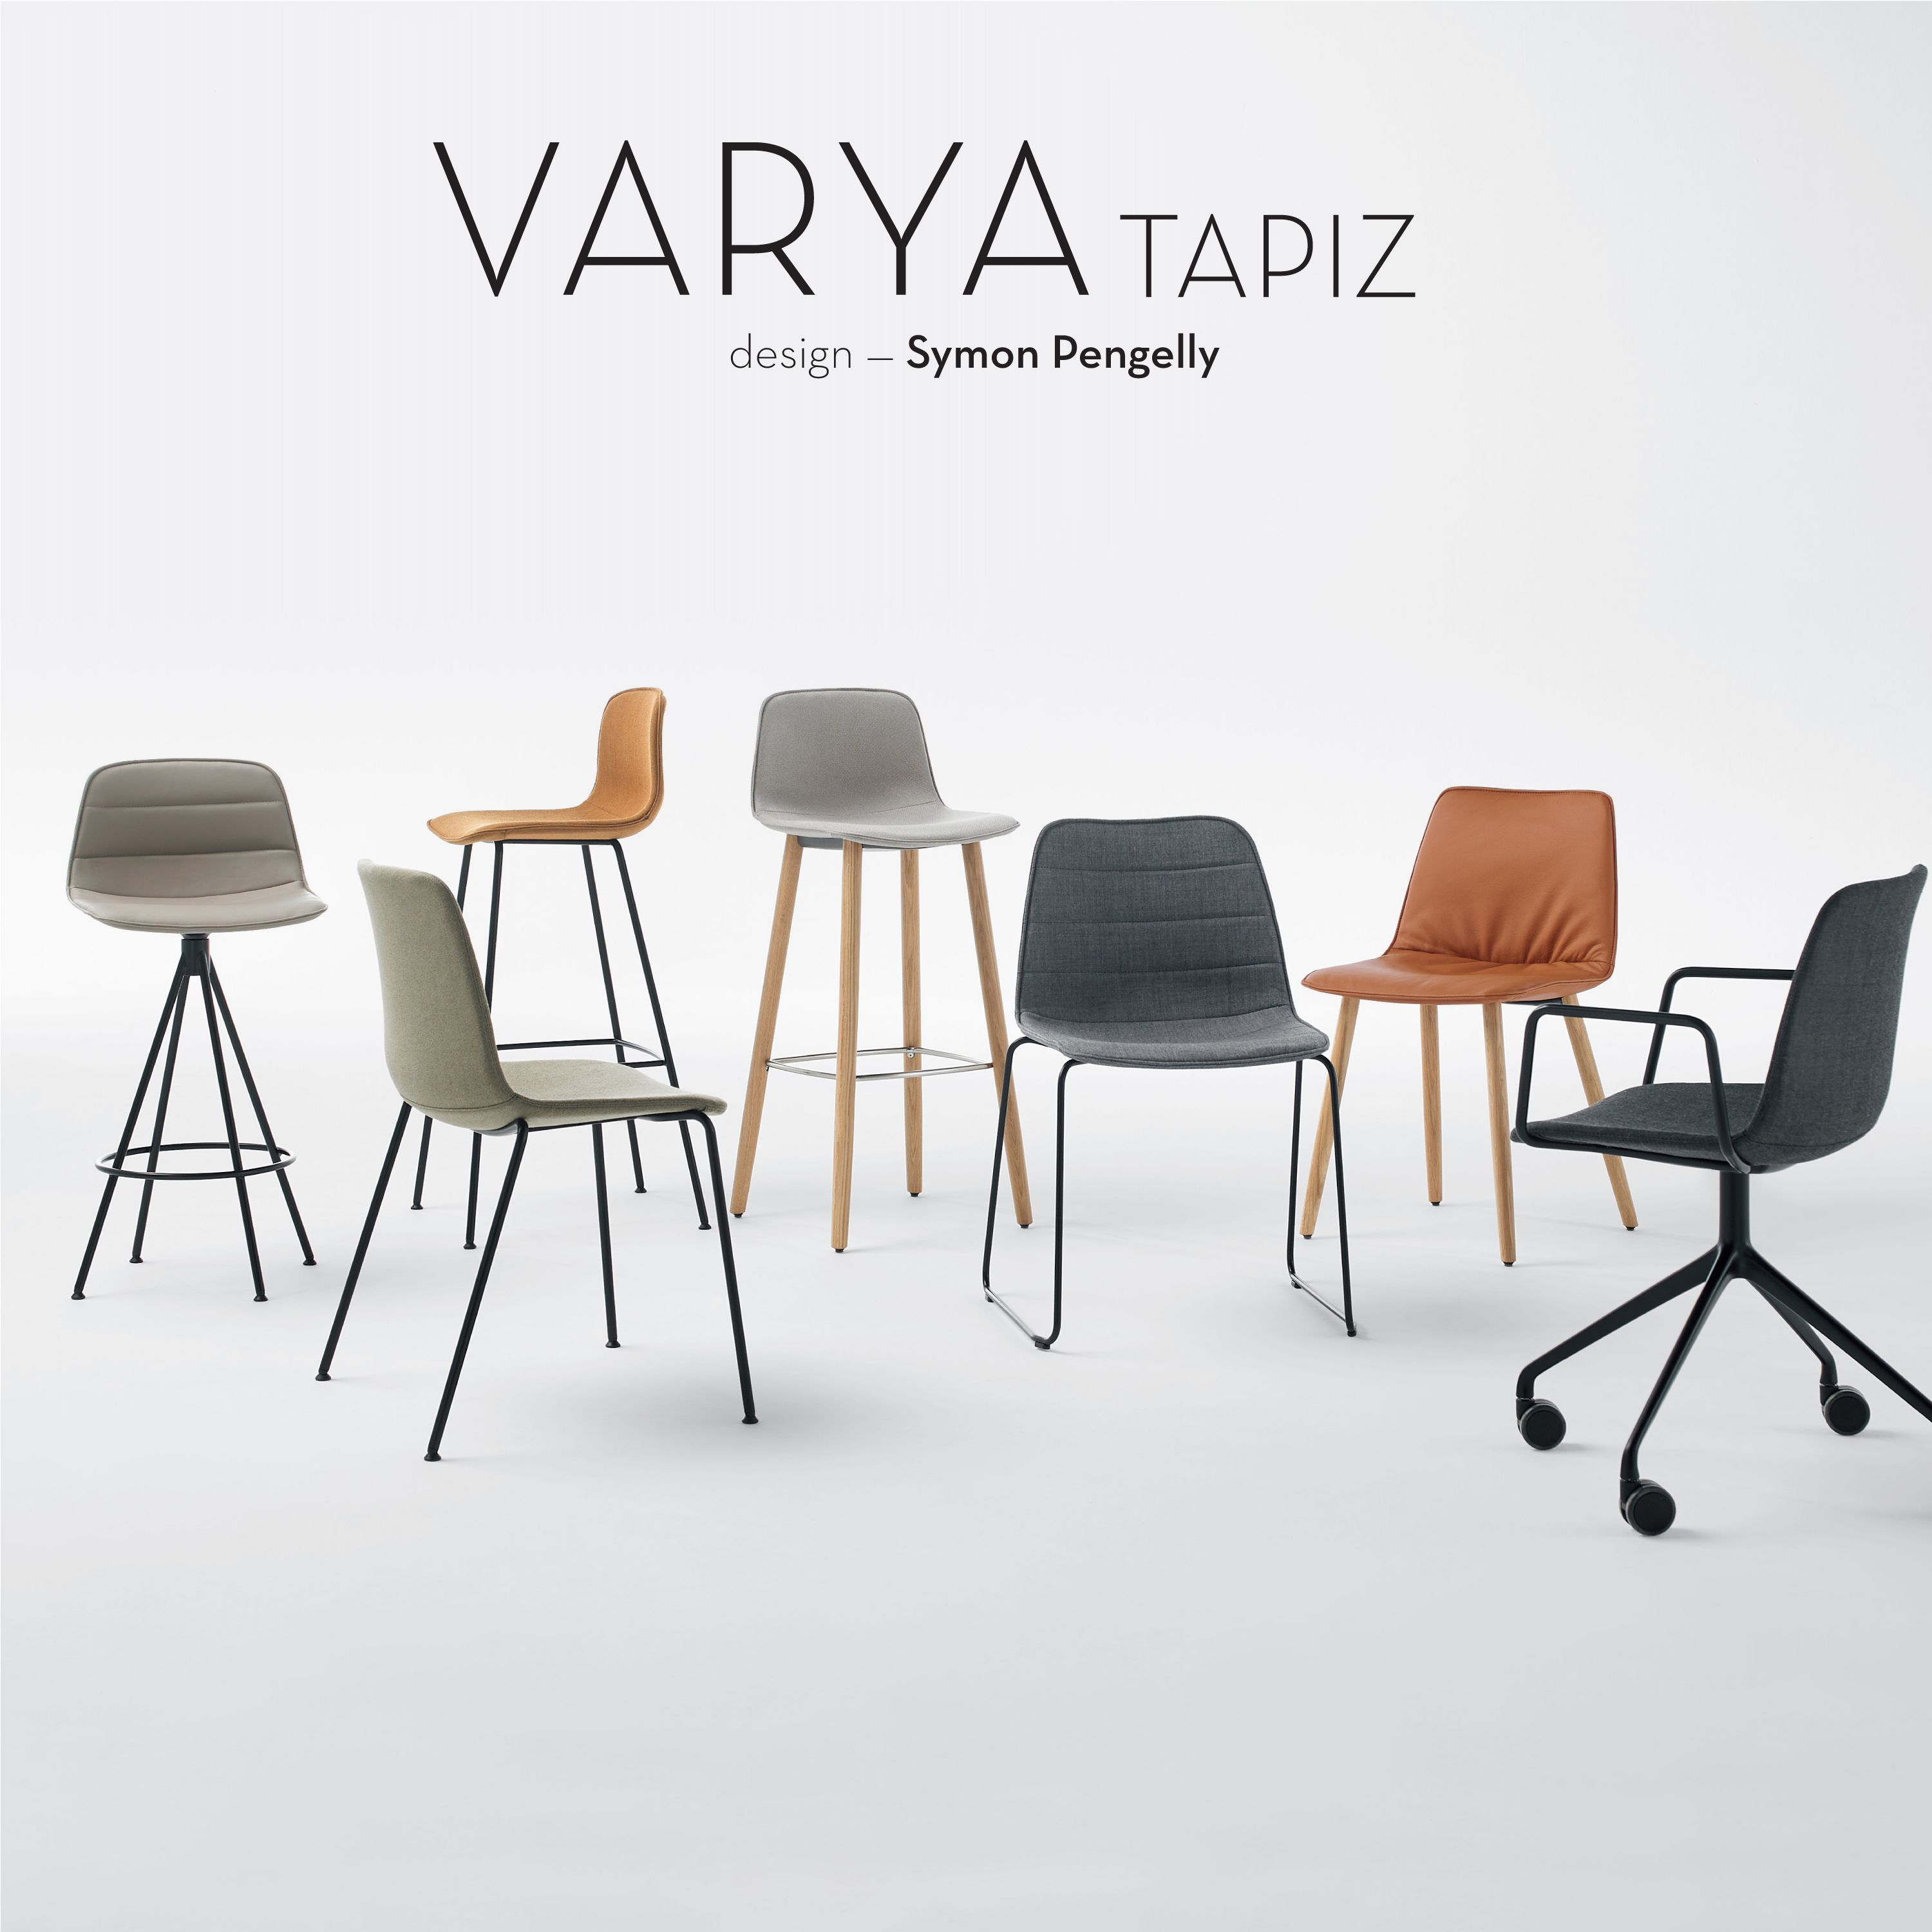 The VARYA TAPIZ collection encompasses all the upholstered versions in the VARYA family, generated by combining three versions of comfortable upholstered seats with different metallic and wooden bases.  The shells can be upholstered in all the fabrics and leathers of the INCLASS sample card or in fabrics specified or supplied by the customer. The metallic and wooden bases are also available in a broad range of finishes. This wide variety of bases and finishes enables the configuration of…